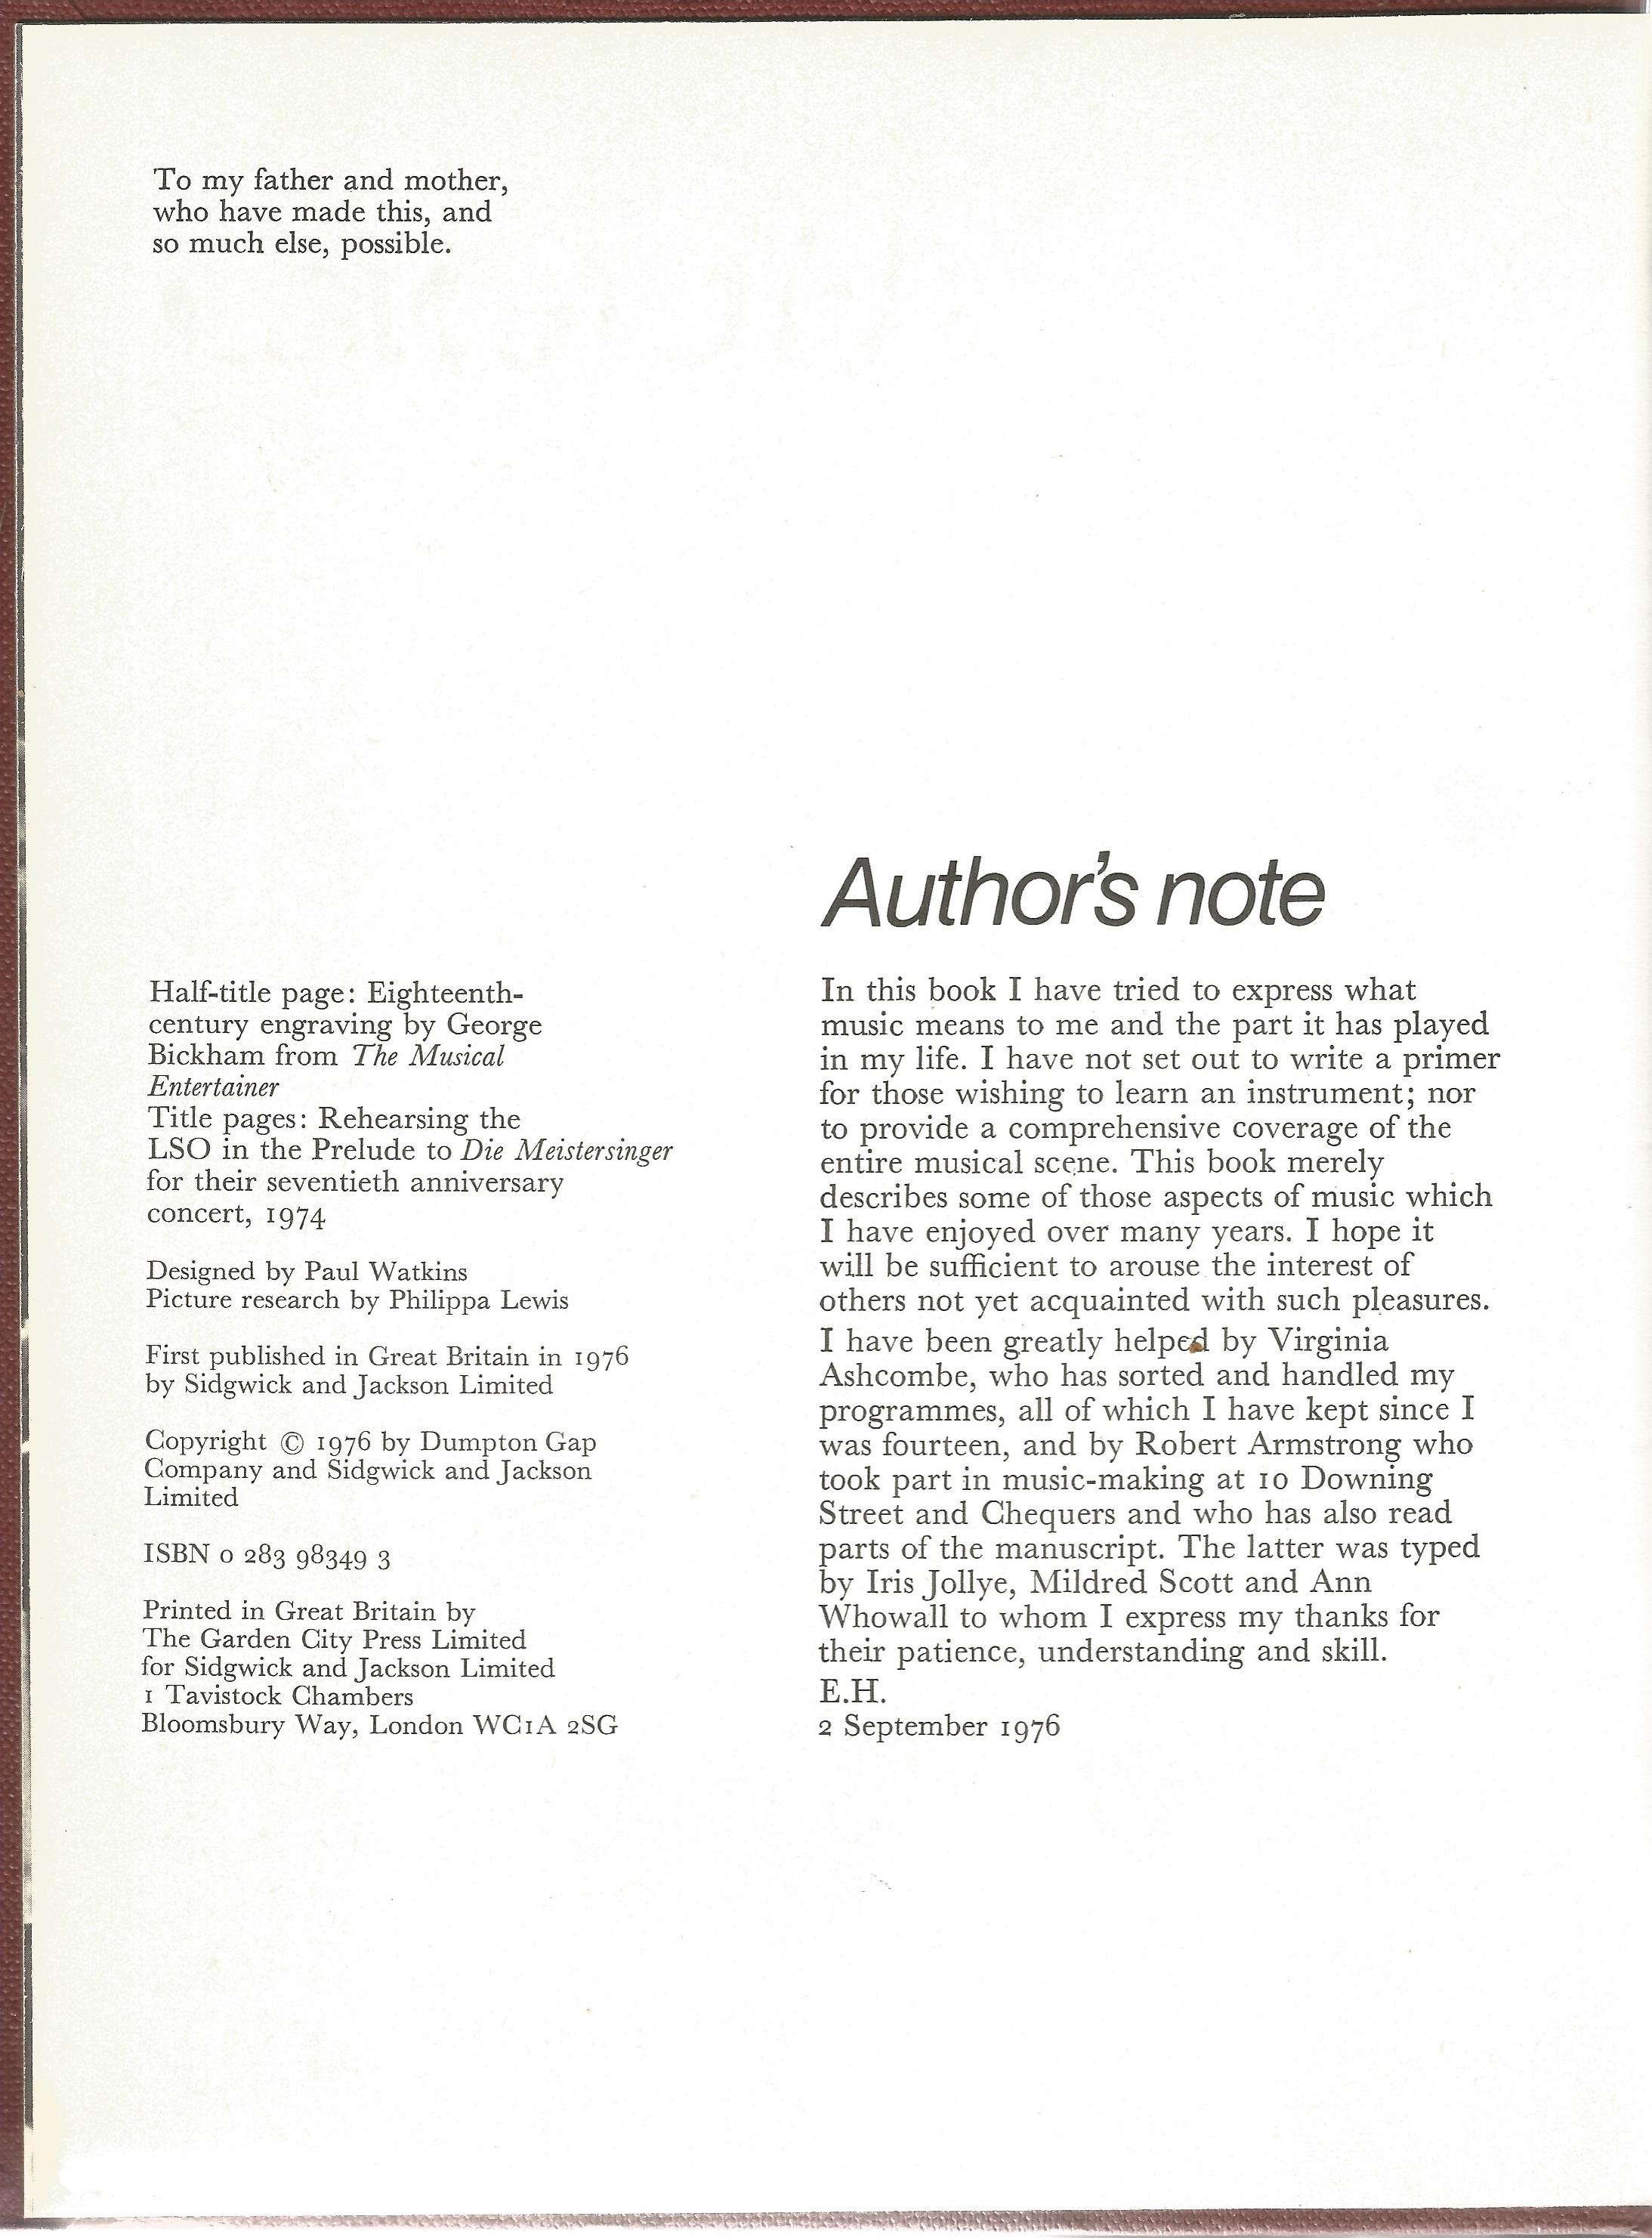 Edward Heath Signed Hardback Book Music A Joy for Life First Edition 1976 published by Sidgwick & - Image 3 of 4